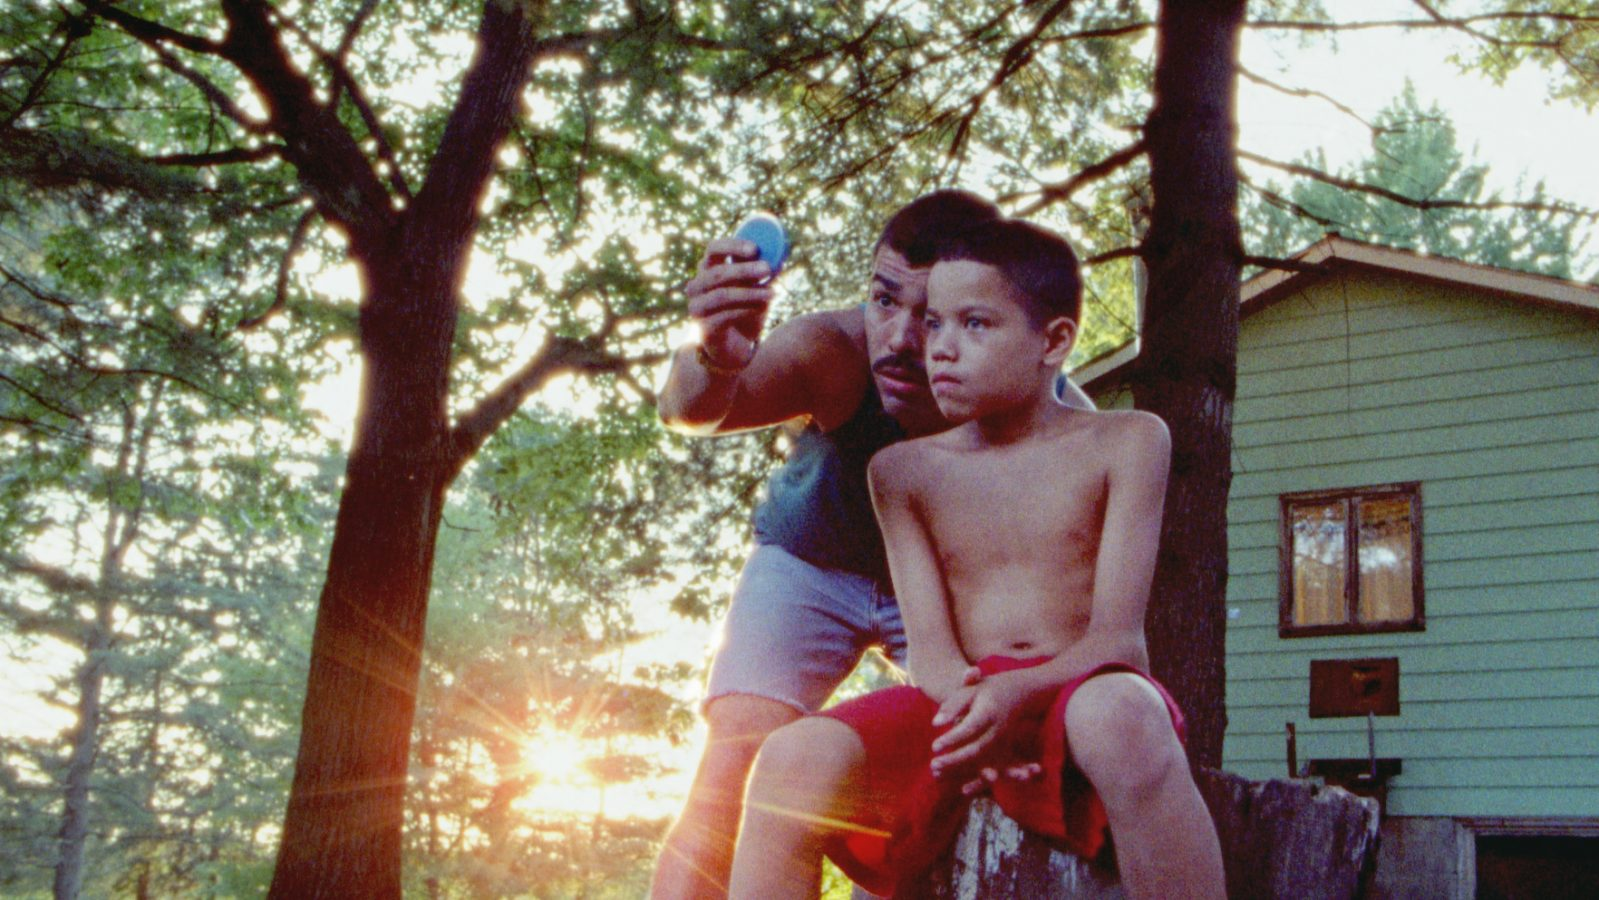 TRAILER: 'We the Animals,' Starring Raul Castillo, Is Being Hailed This Year's 'Moonlight'